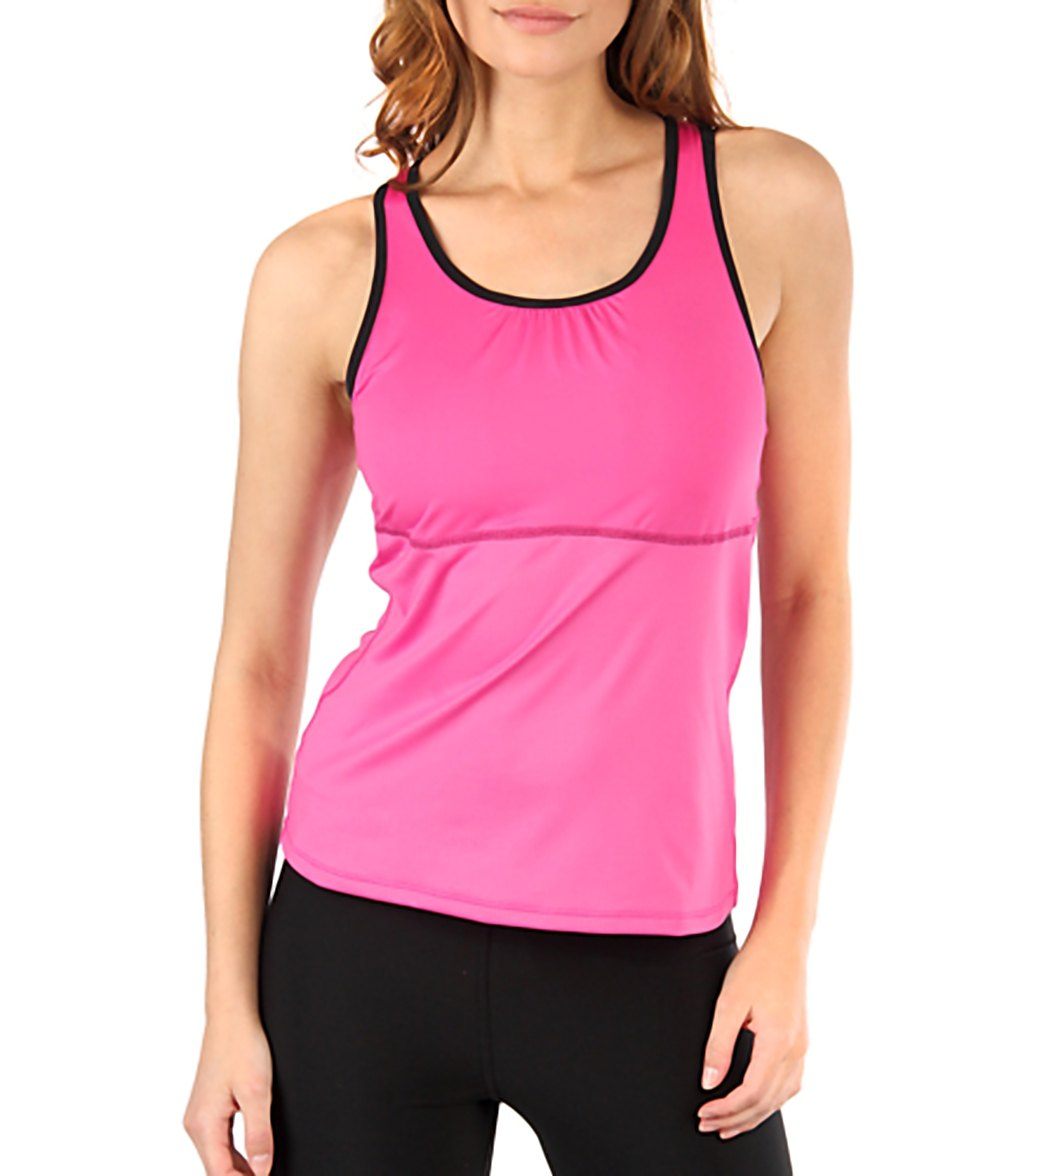 6b51d033 Skirt Sports Wonder Girl Tank Top at SwimOutlet.com - Free Shipping